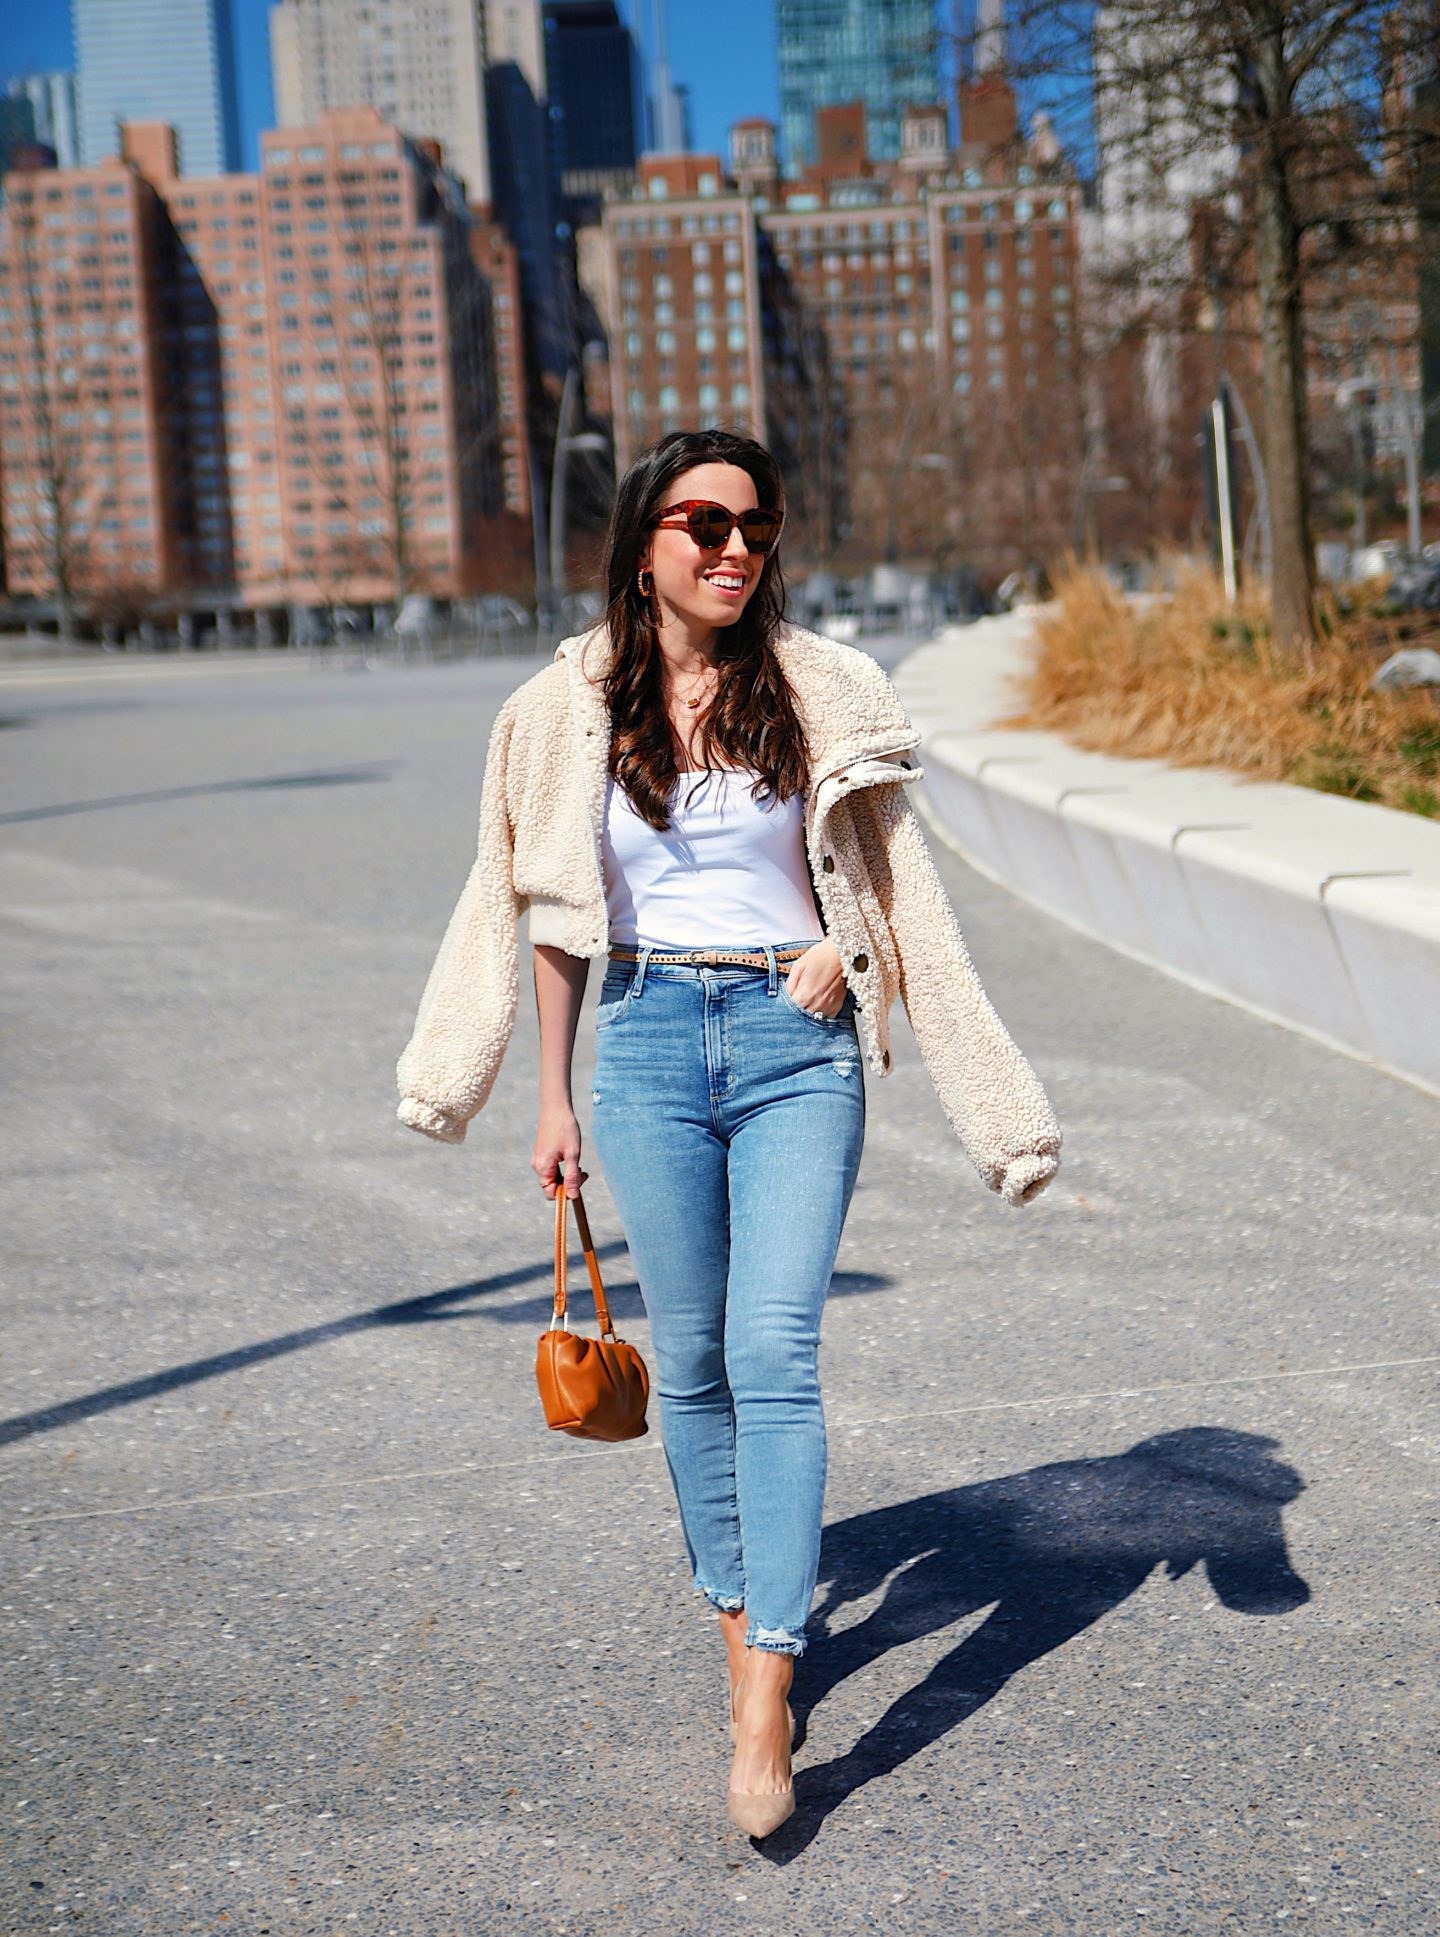 ana-florentina-wearing-abercrombie-jeans-and-beige-jacket